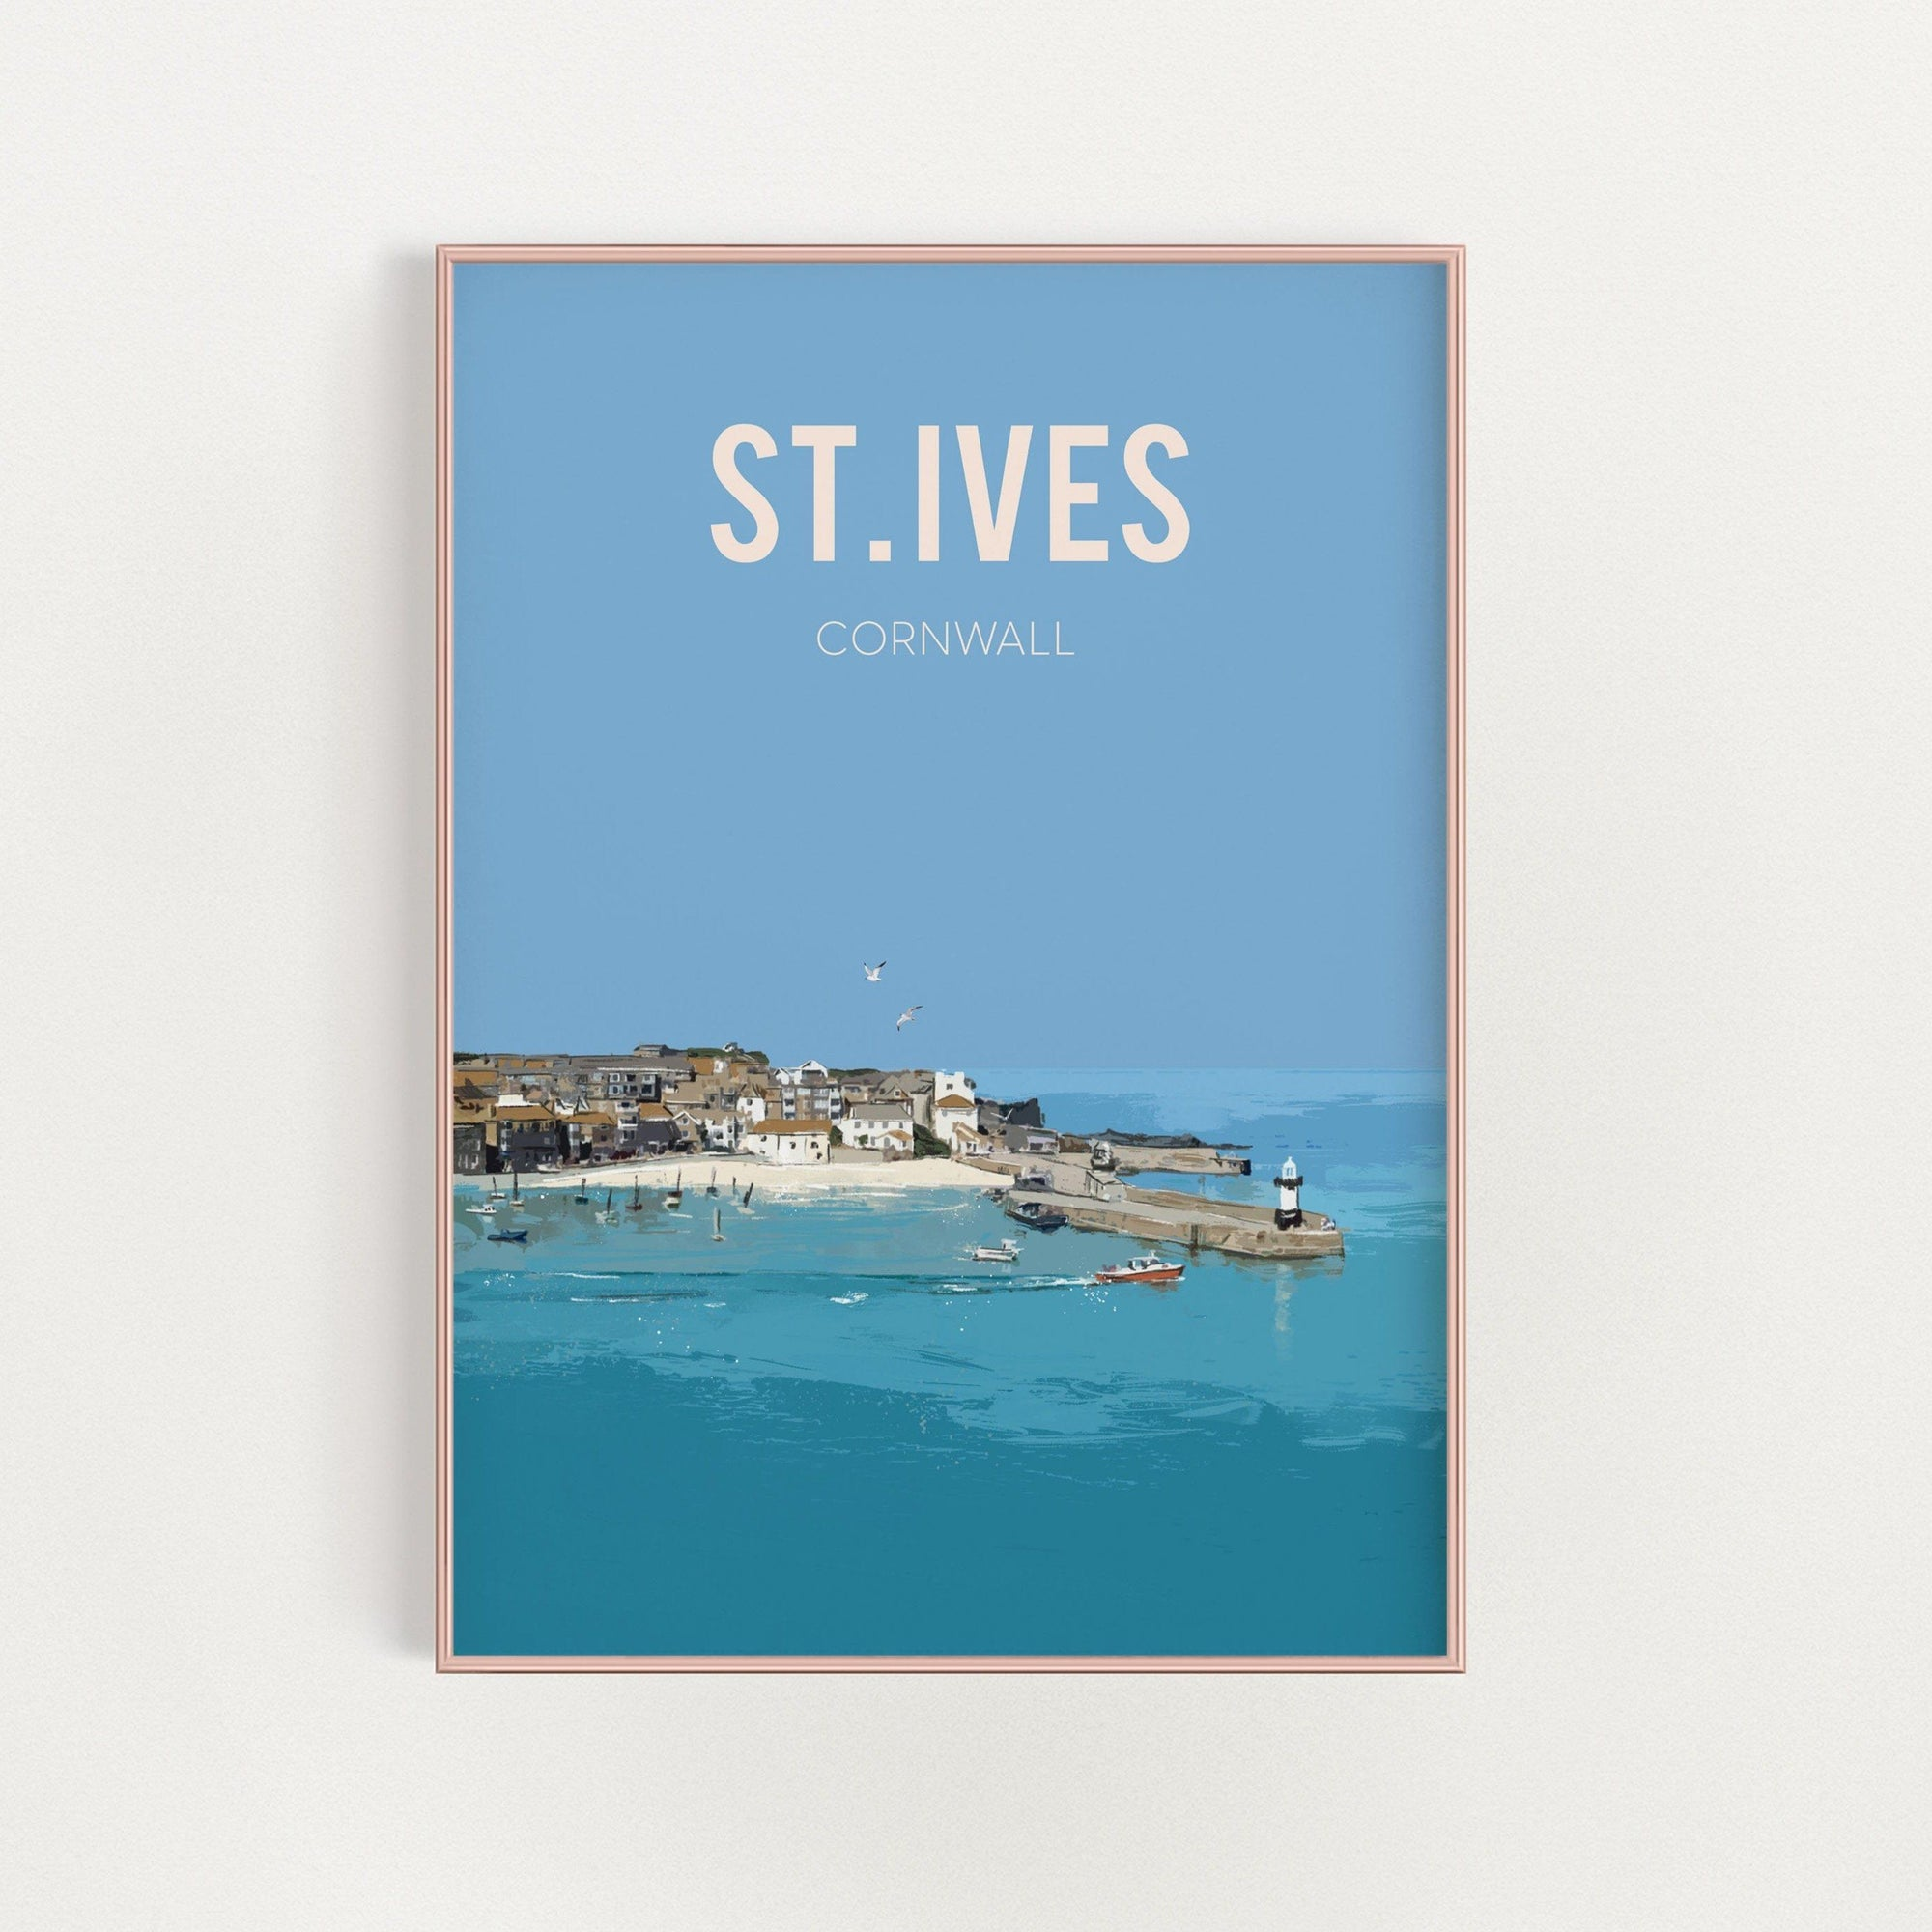 St. Ives, Cornwall travel art print - unframed